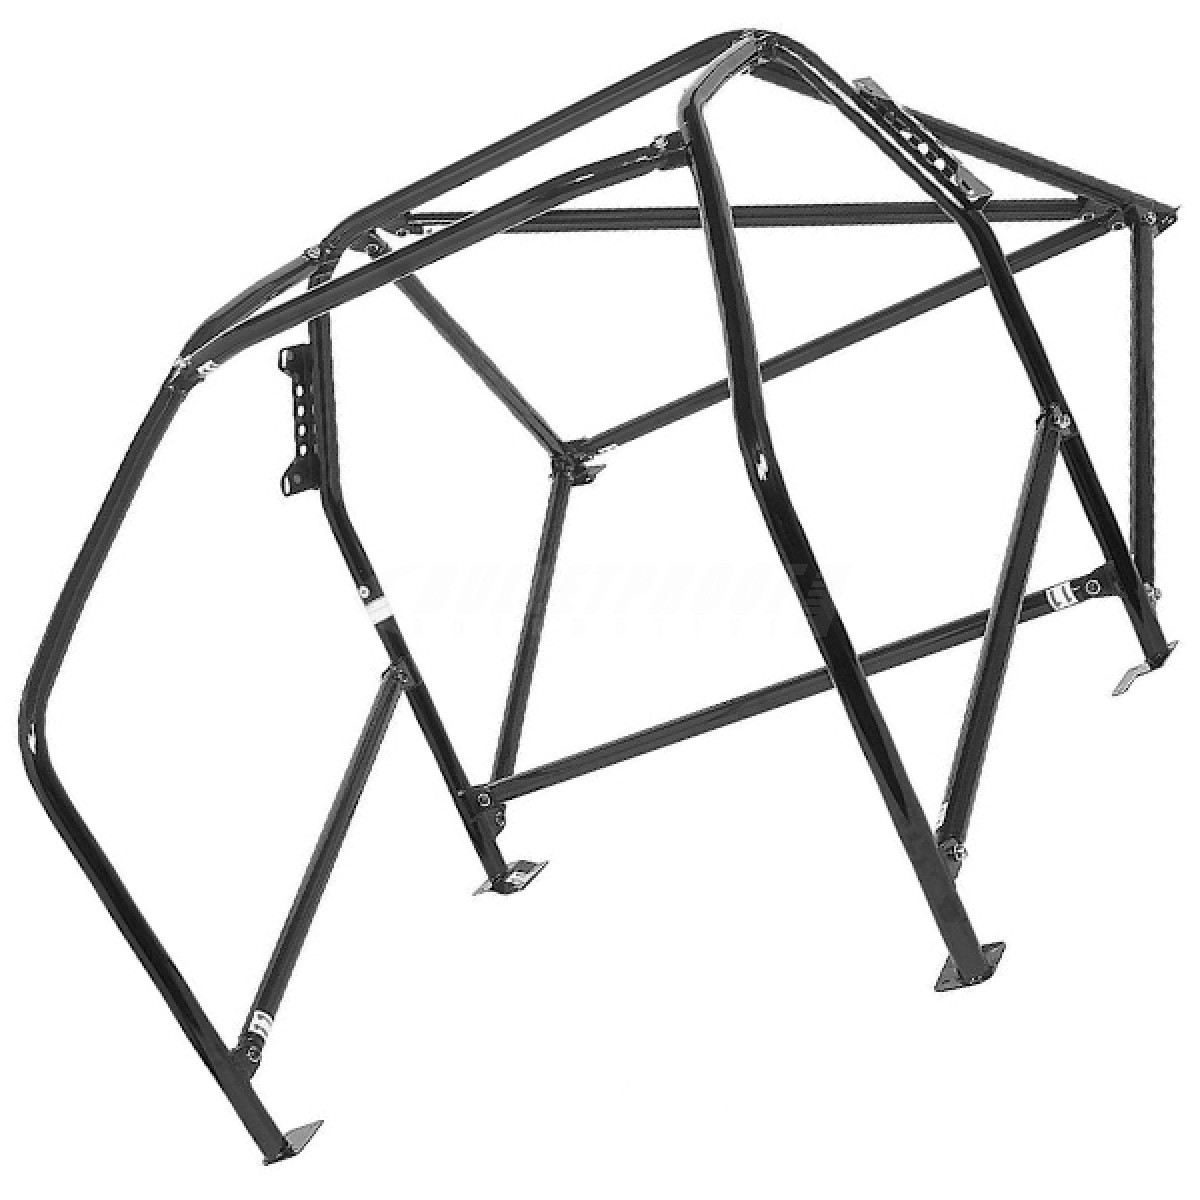 Cusco 6A1 261 L Chromoloy 7 Point Roll Cage + Harness Bar